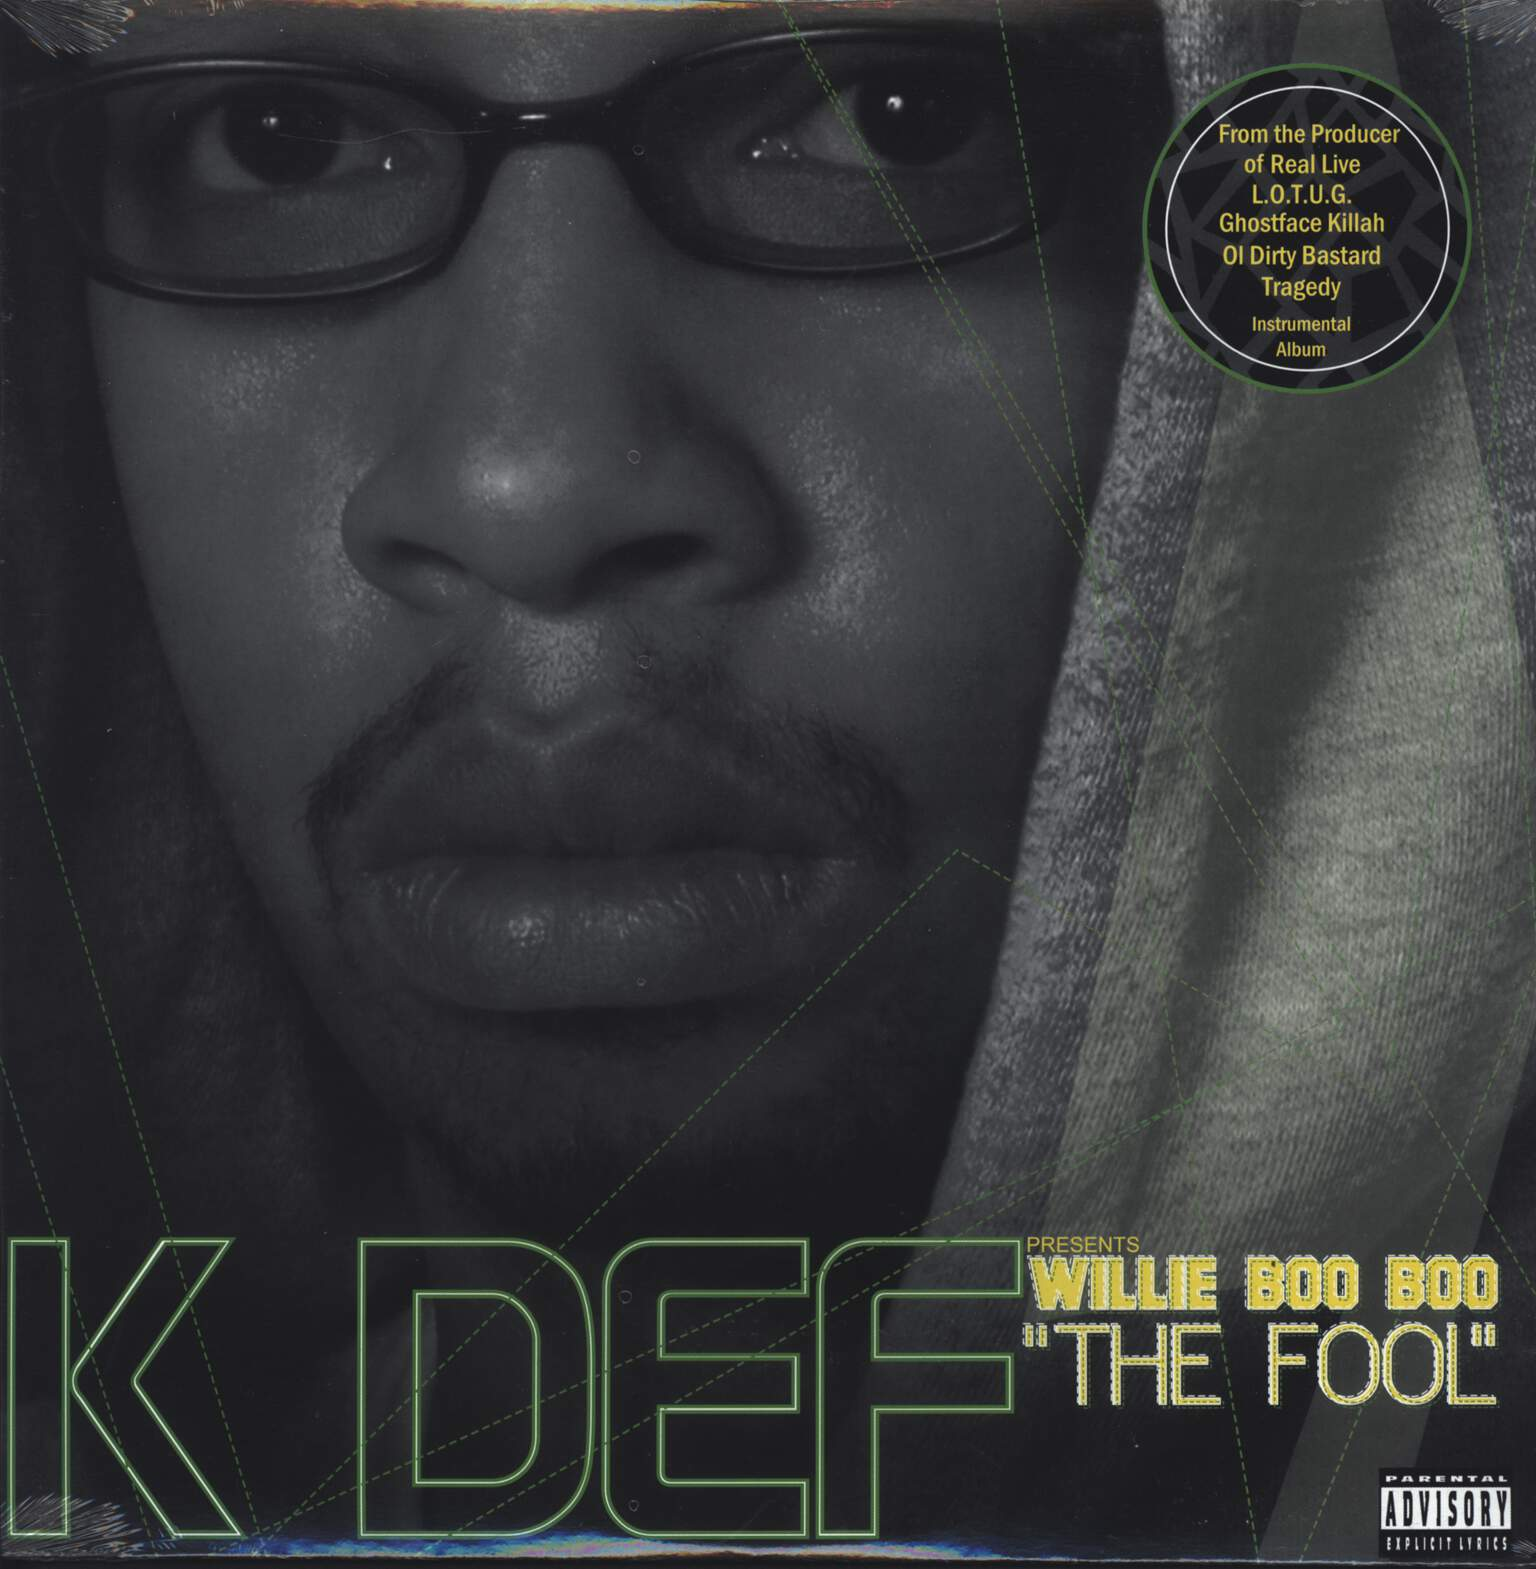 "K-Def: Willie Boo Boo ""The Fool"", LP (Vinyl)"